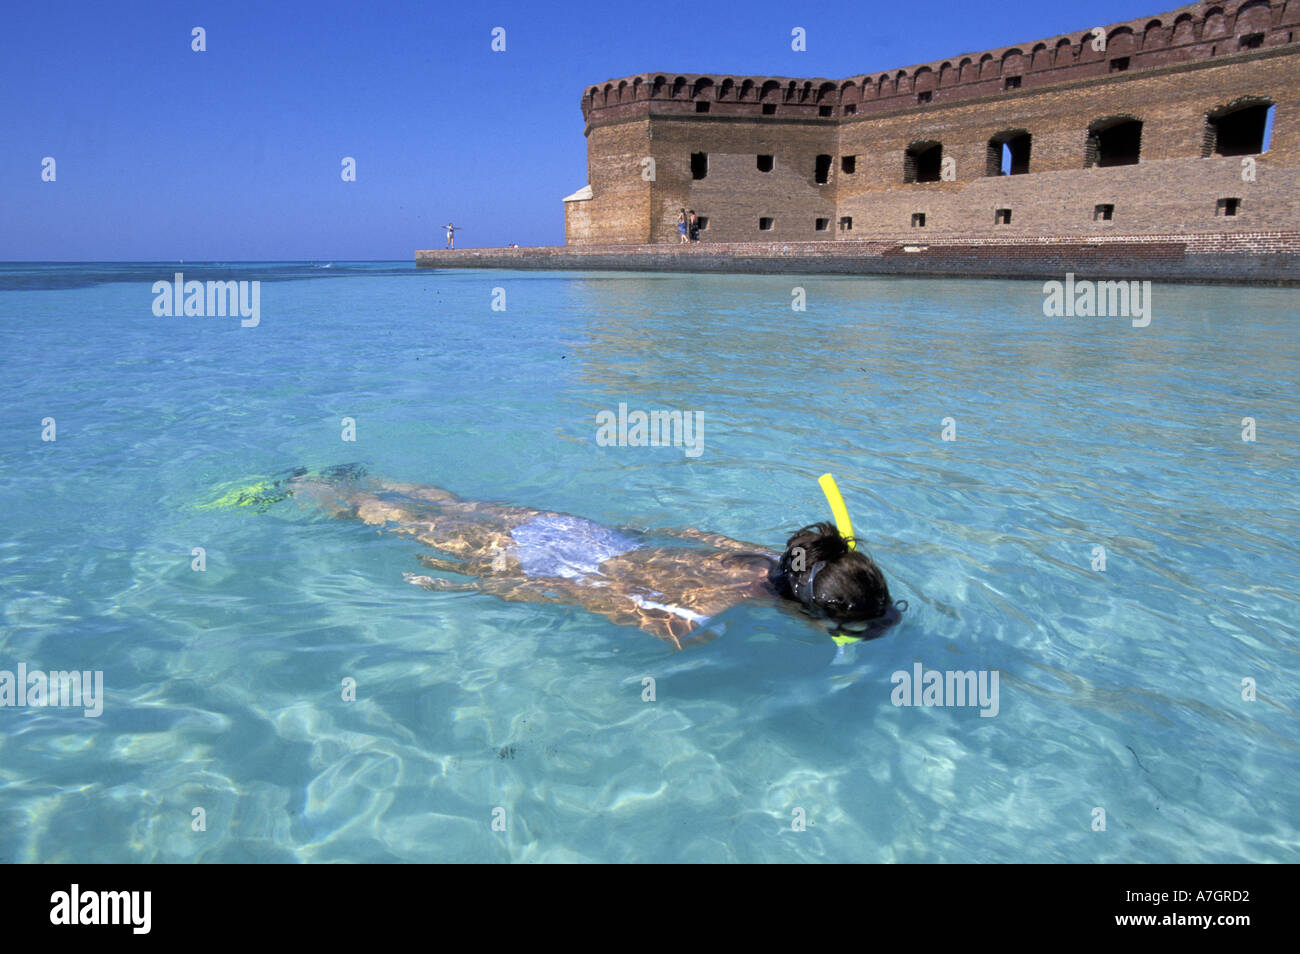 U S A Florida Dry Tortugas Garden Key Snorkling At Fort Jefferson Stock Photo Royalty Free